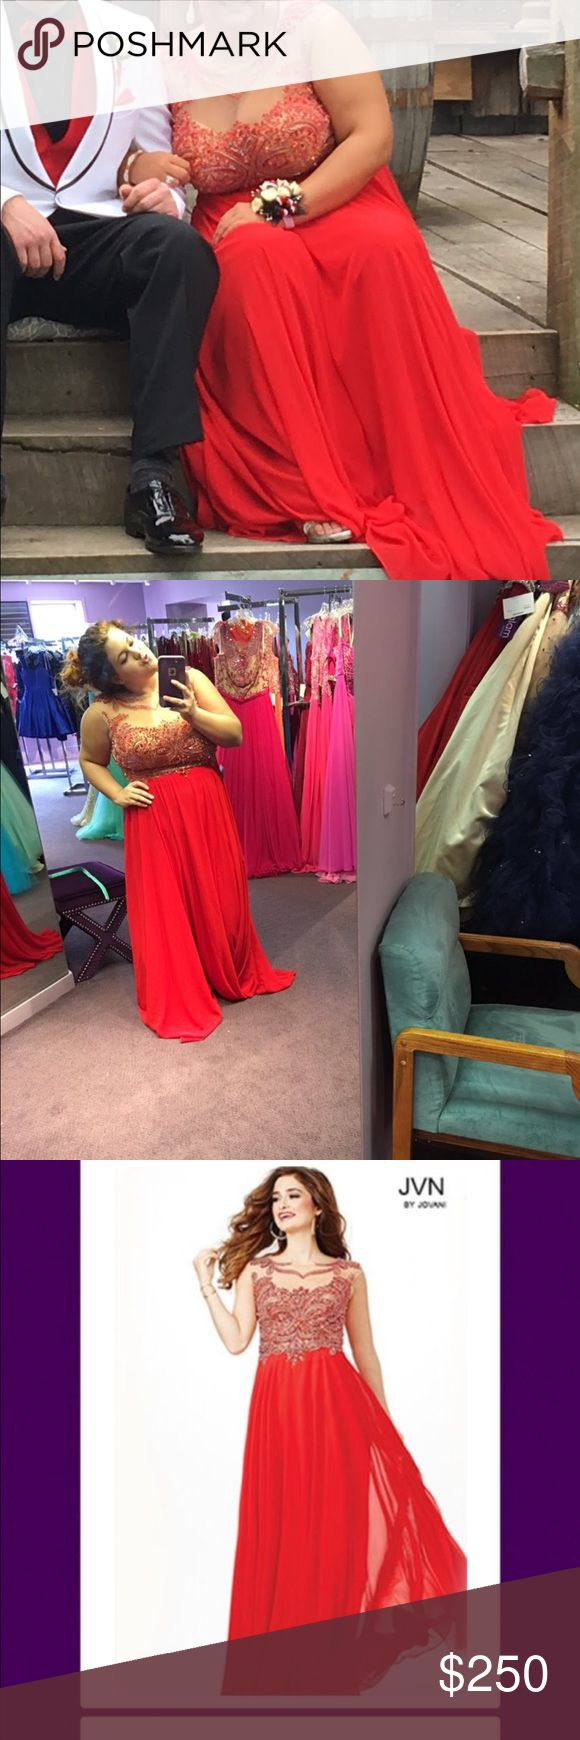 Selling my prom dress Red jovani jeweled prom dress for sale! Only worn once, in great condition bought at Henri's jovanni Dresses Prom